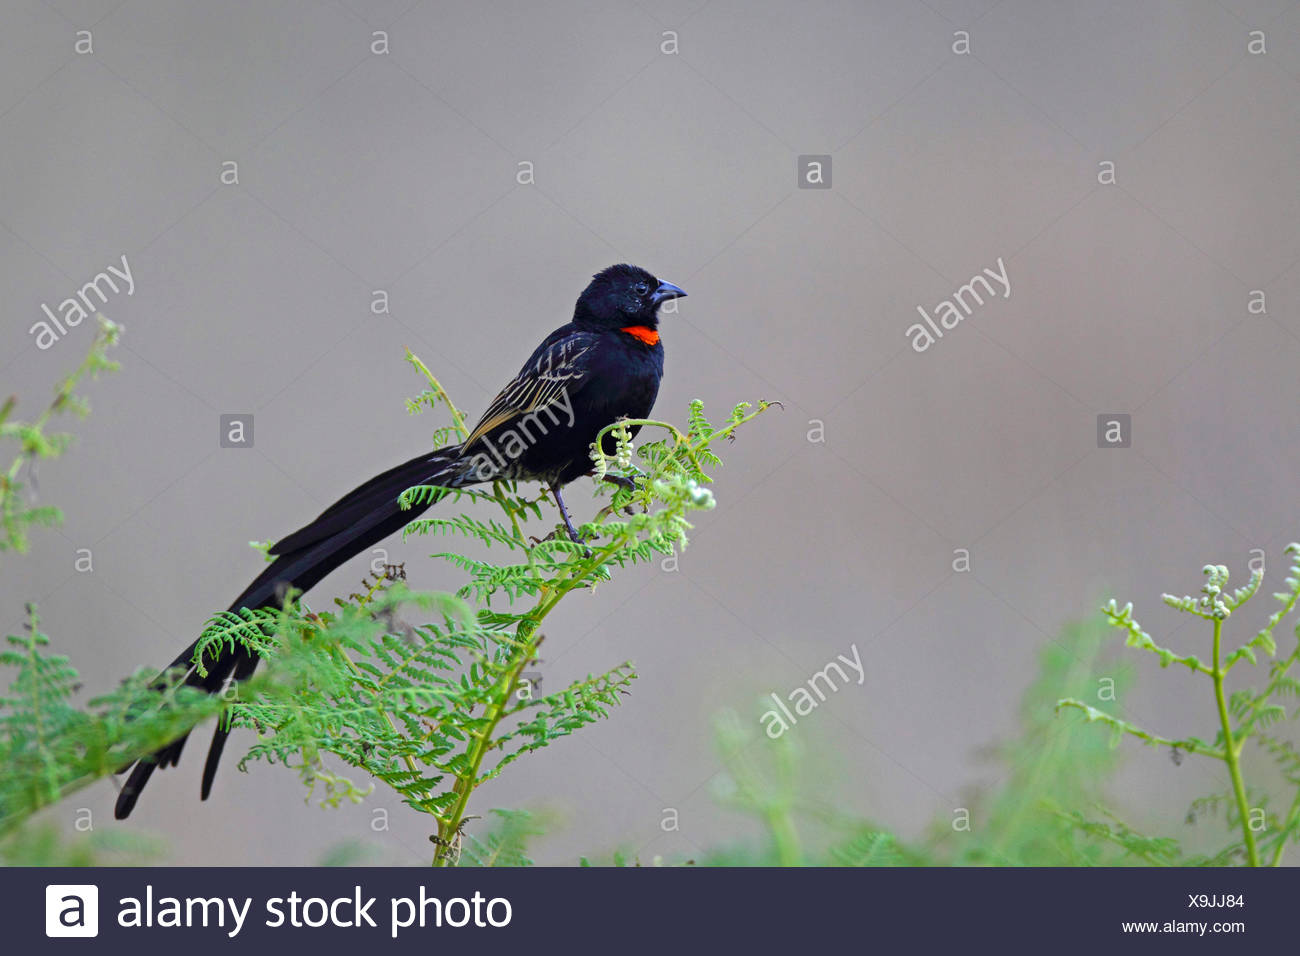 red-collared whydah (Euplectes ardens), male sits on bracken fern, South Africa, Kgaswane Mountain Reserve - Stock Image